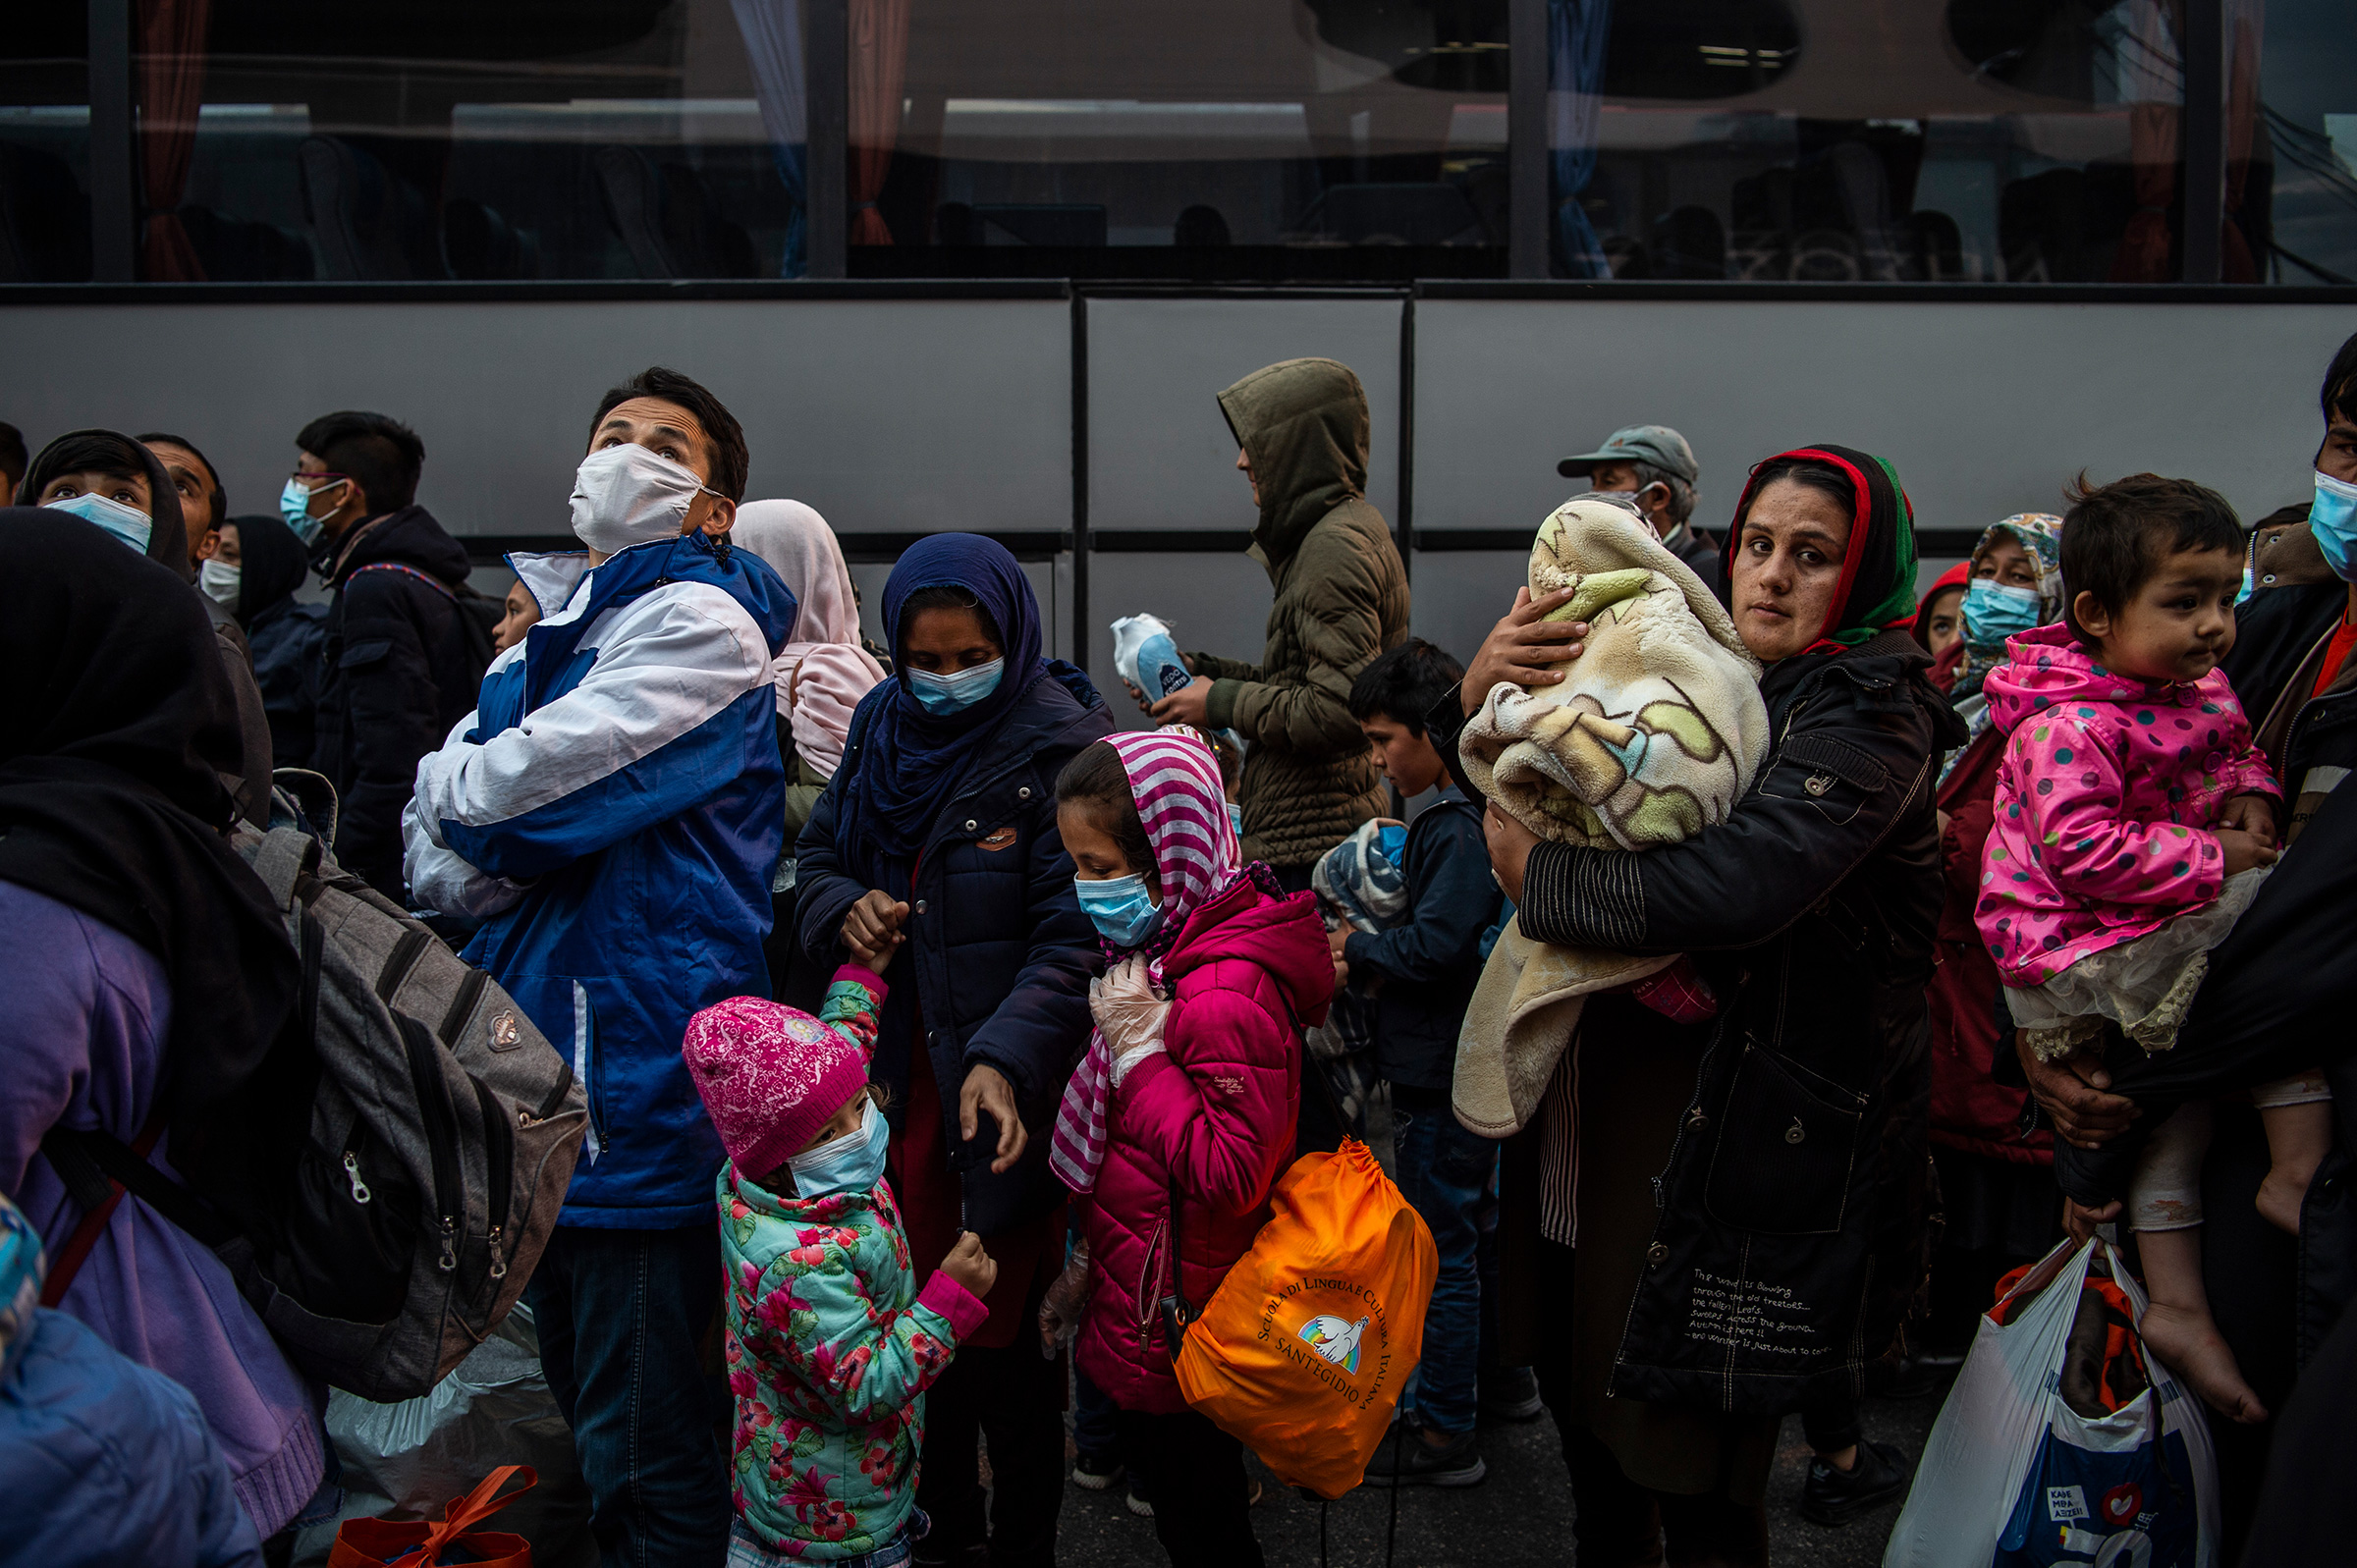 Migrants from Moria refugee camp arriving by ship from the island of Lesbos, stand in the port of Piraeus near Athens on May 4, 2020.